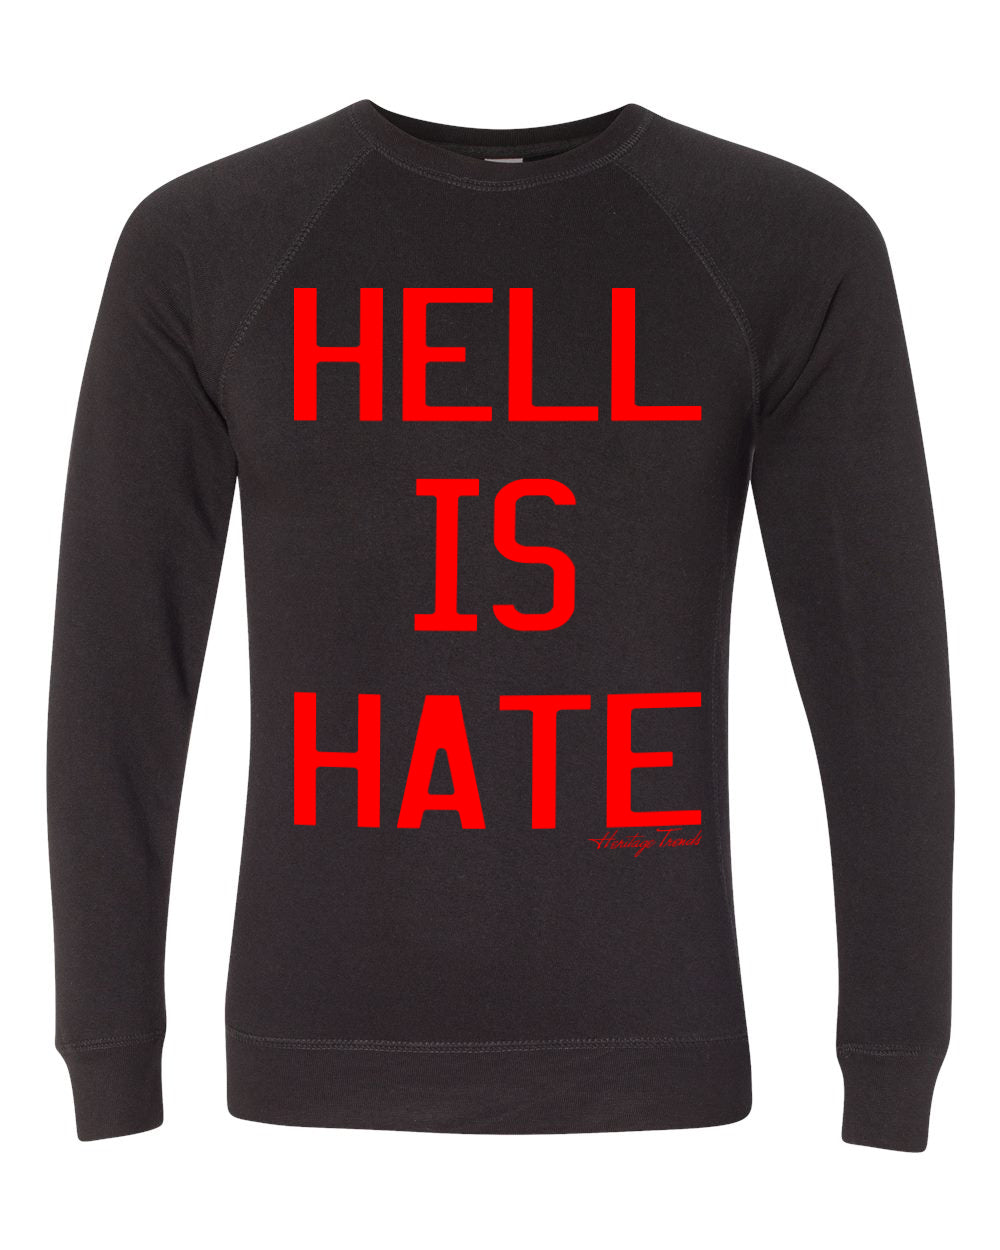 HELL IS HATE-SWEATER